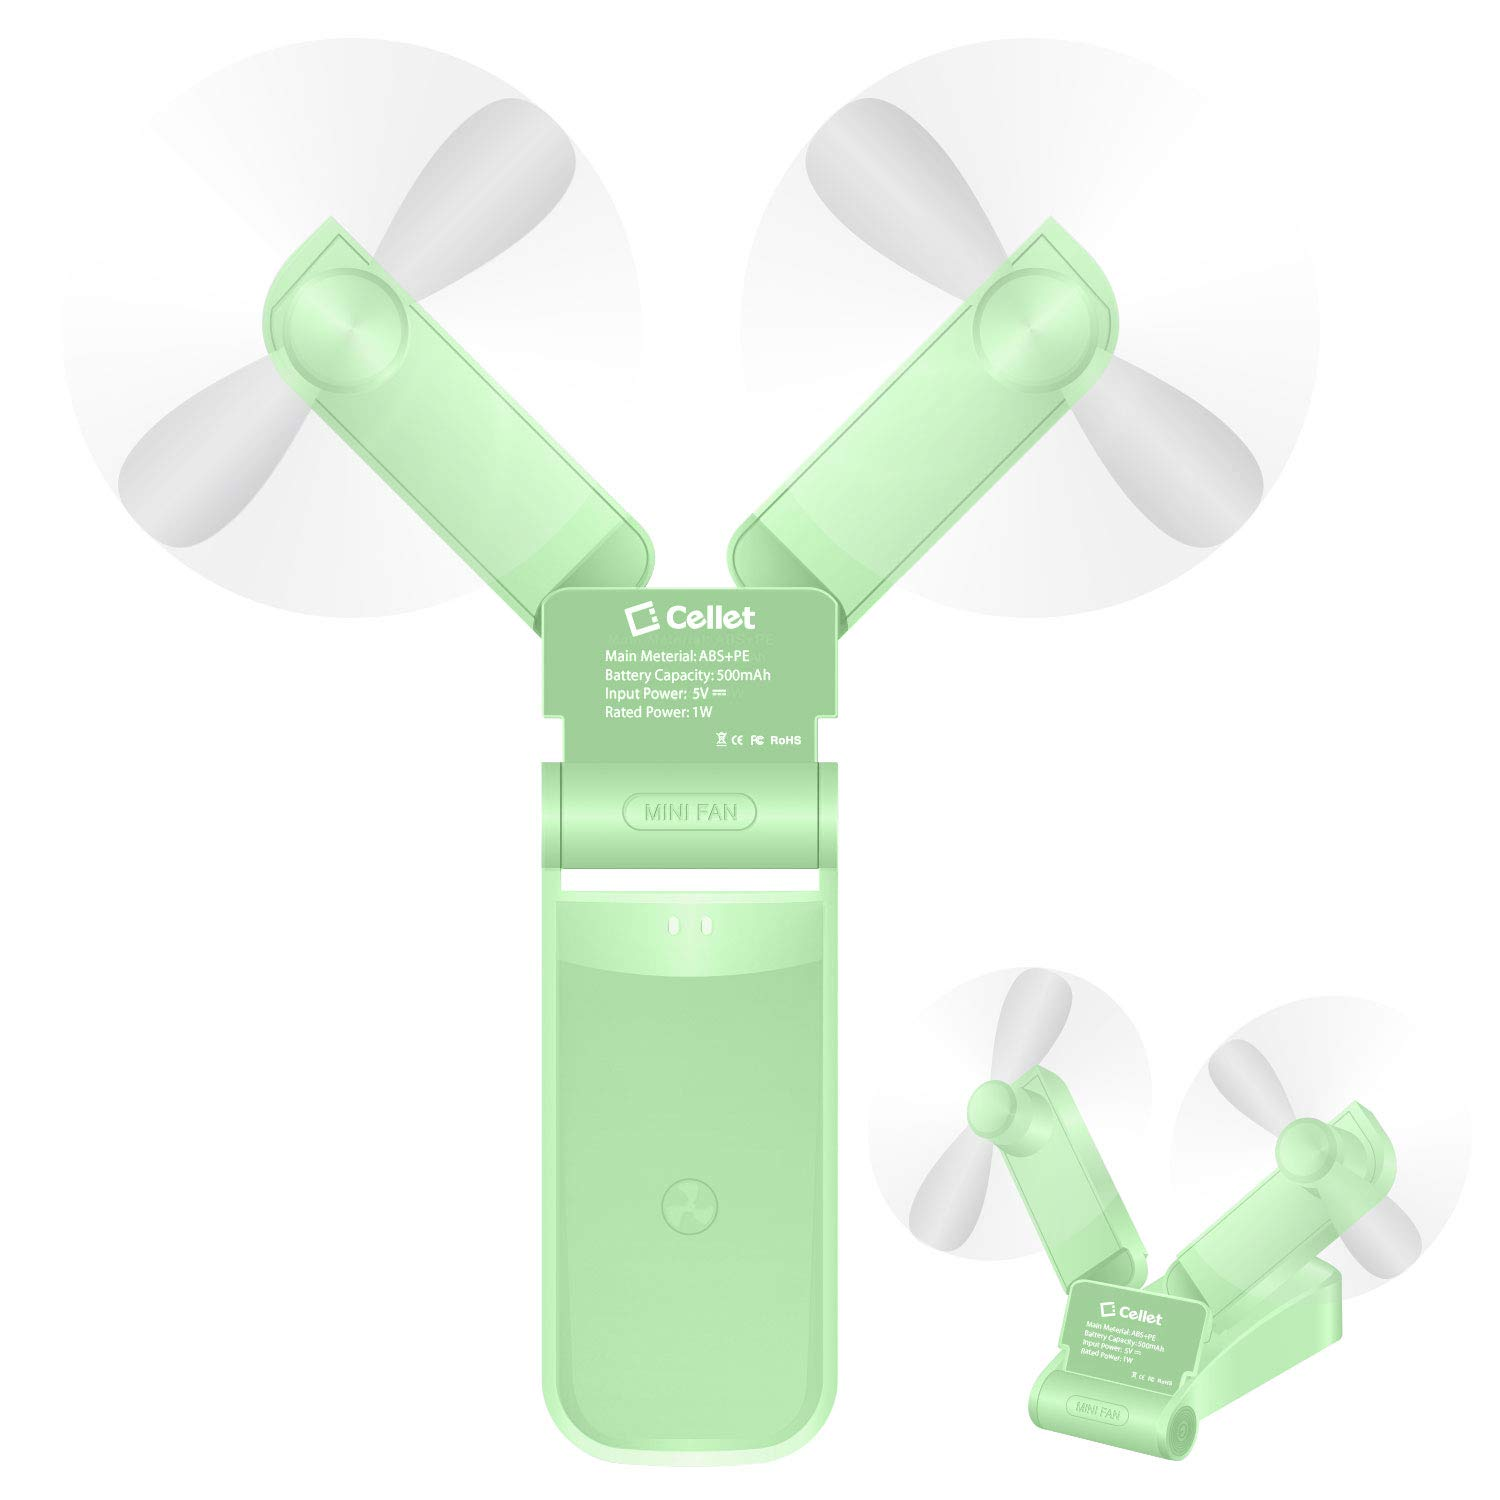 Cellet 2-In-1 Portable Handheld Mini Fans Two Speed Air Cooling USB Rechargeable Lightweight Ideal for Home, Office Amusement Park, Summer, Travel, Hiking, Running and other Outdoor Activities Green